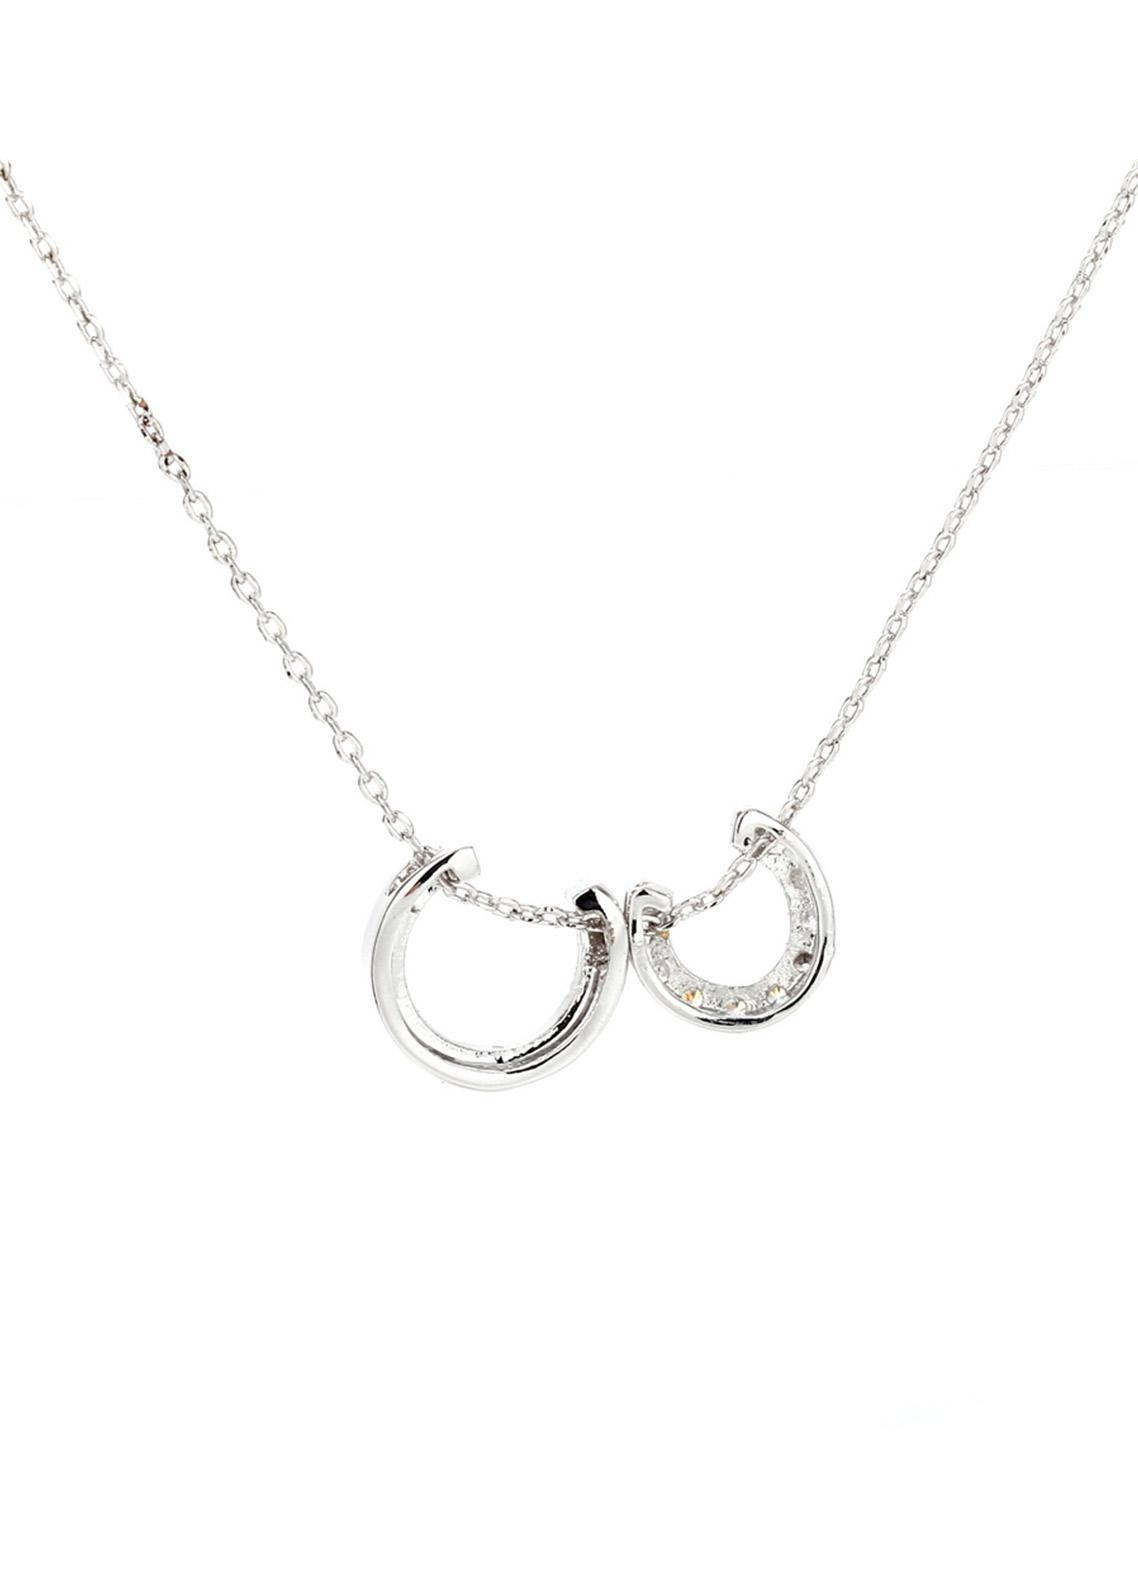 Anna Grace London by Silk Avenue Silver Plated Crystal Fashion Necklace AGN0031 - Ladies Jewellery